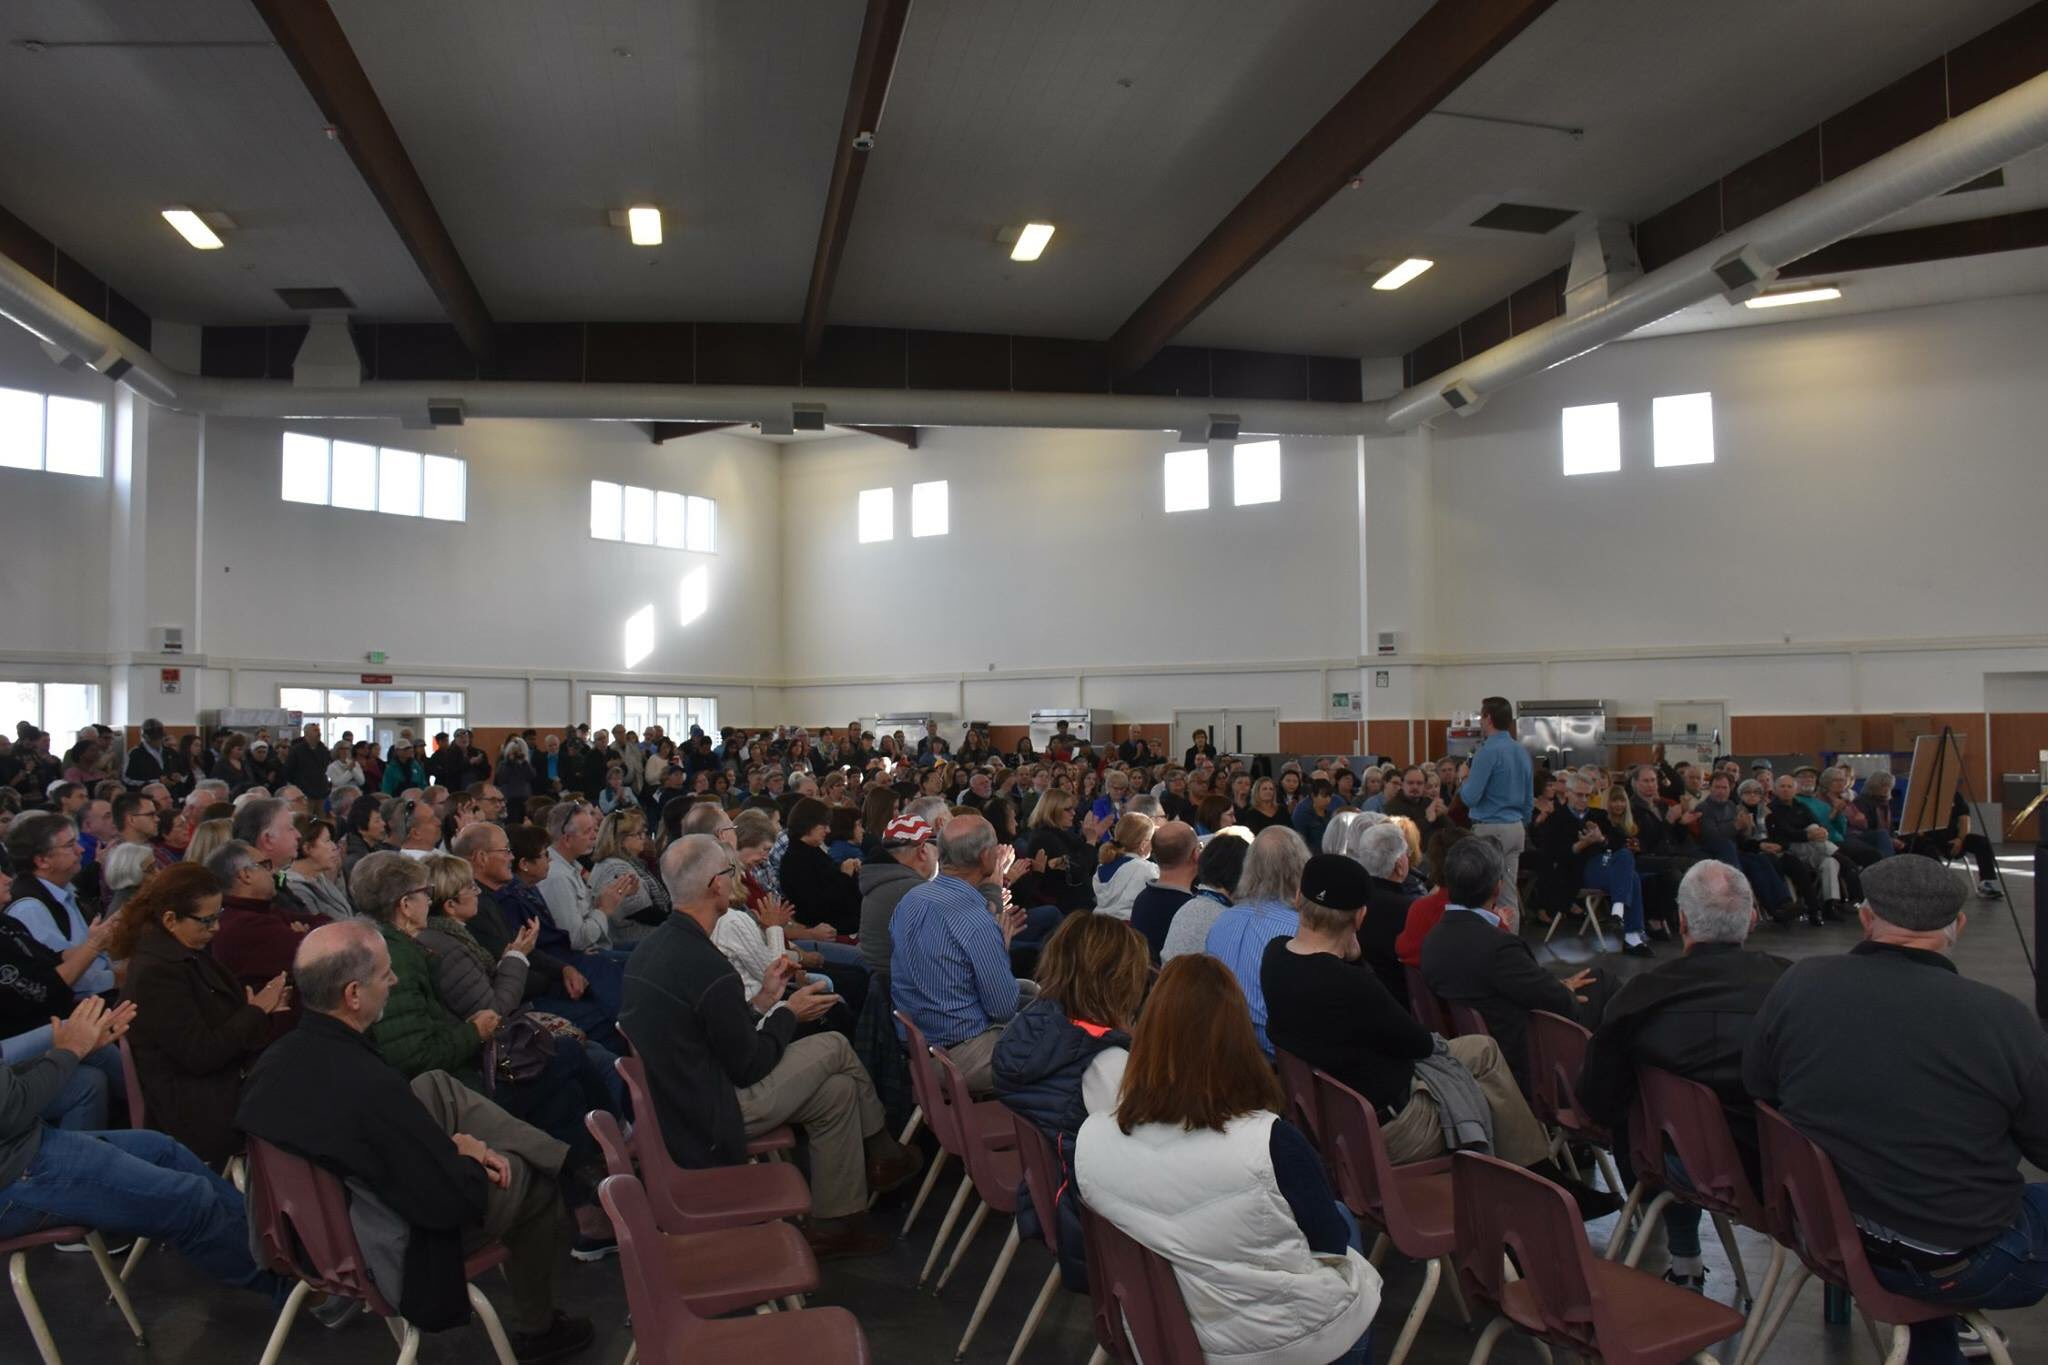 Thanks to all who came out to our #CA15 Town Hall today in San Ramon! https://t.co/qKsVc5kxOD